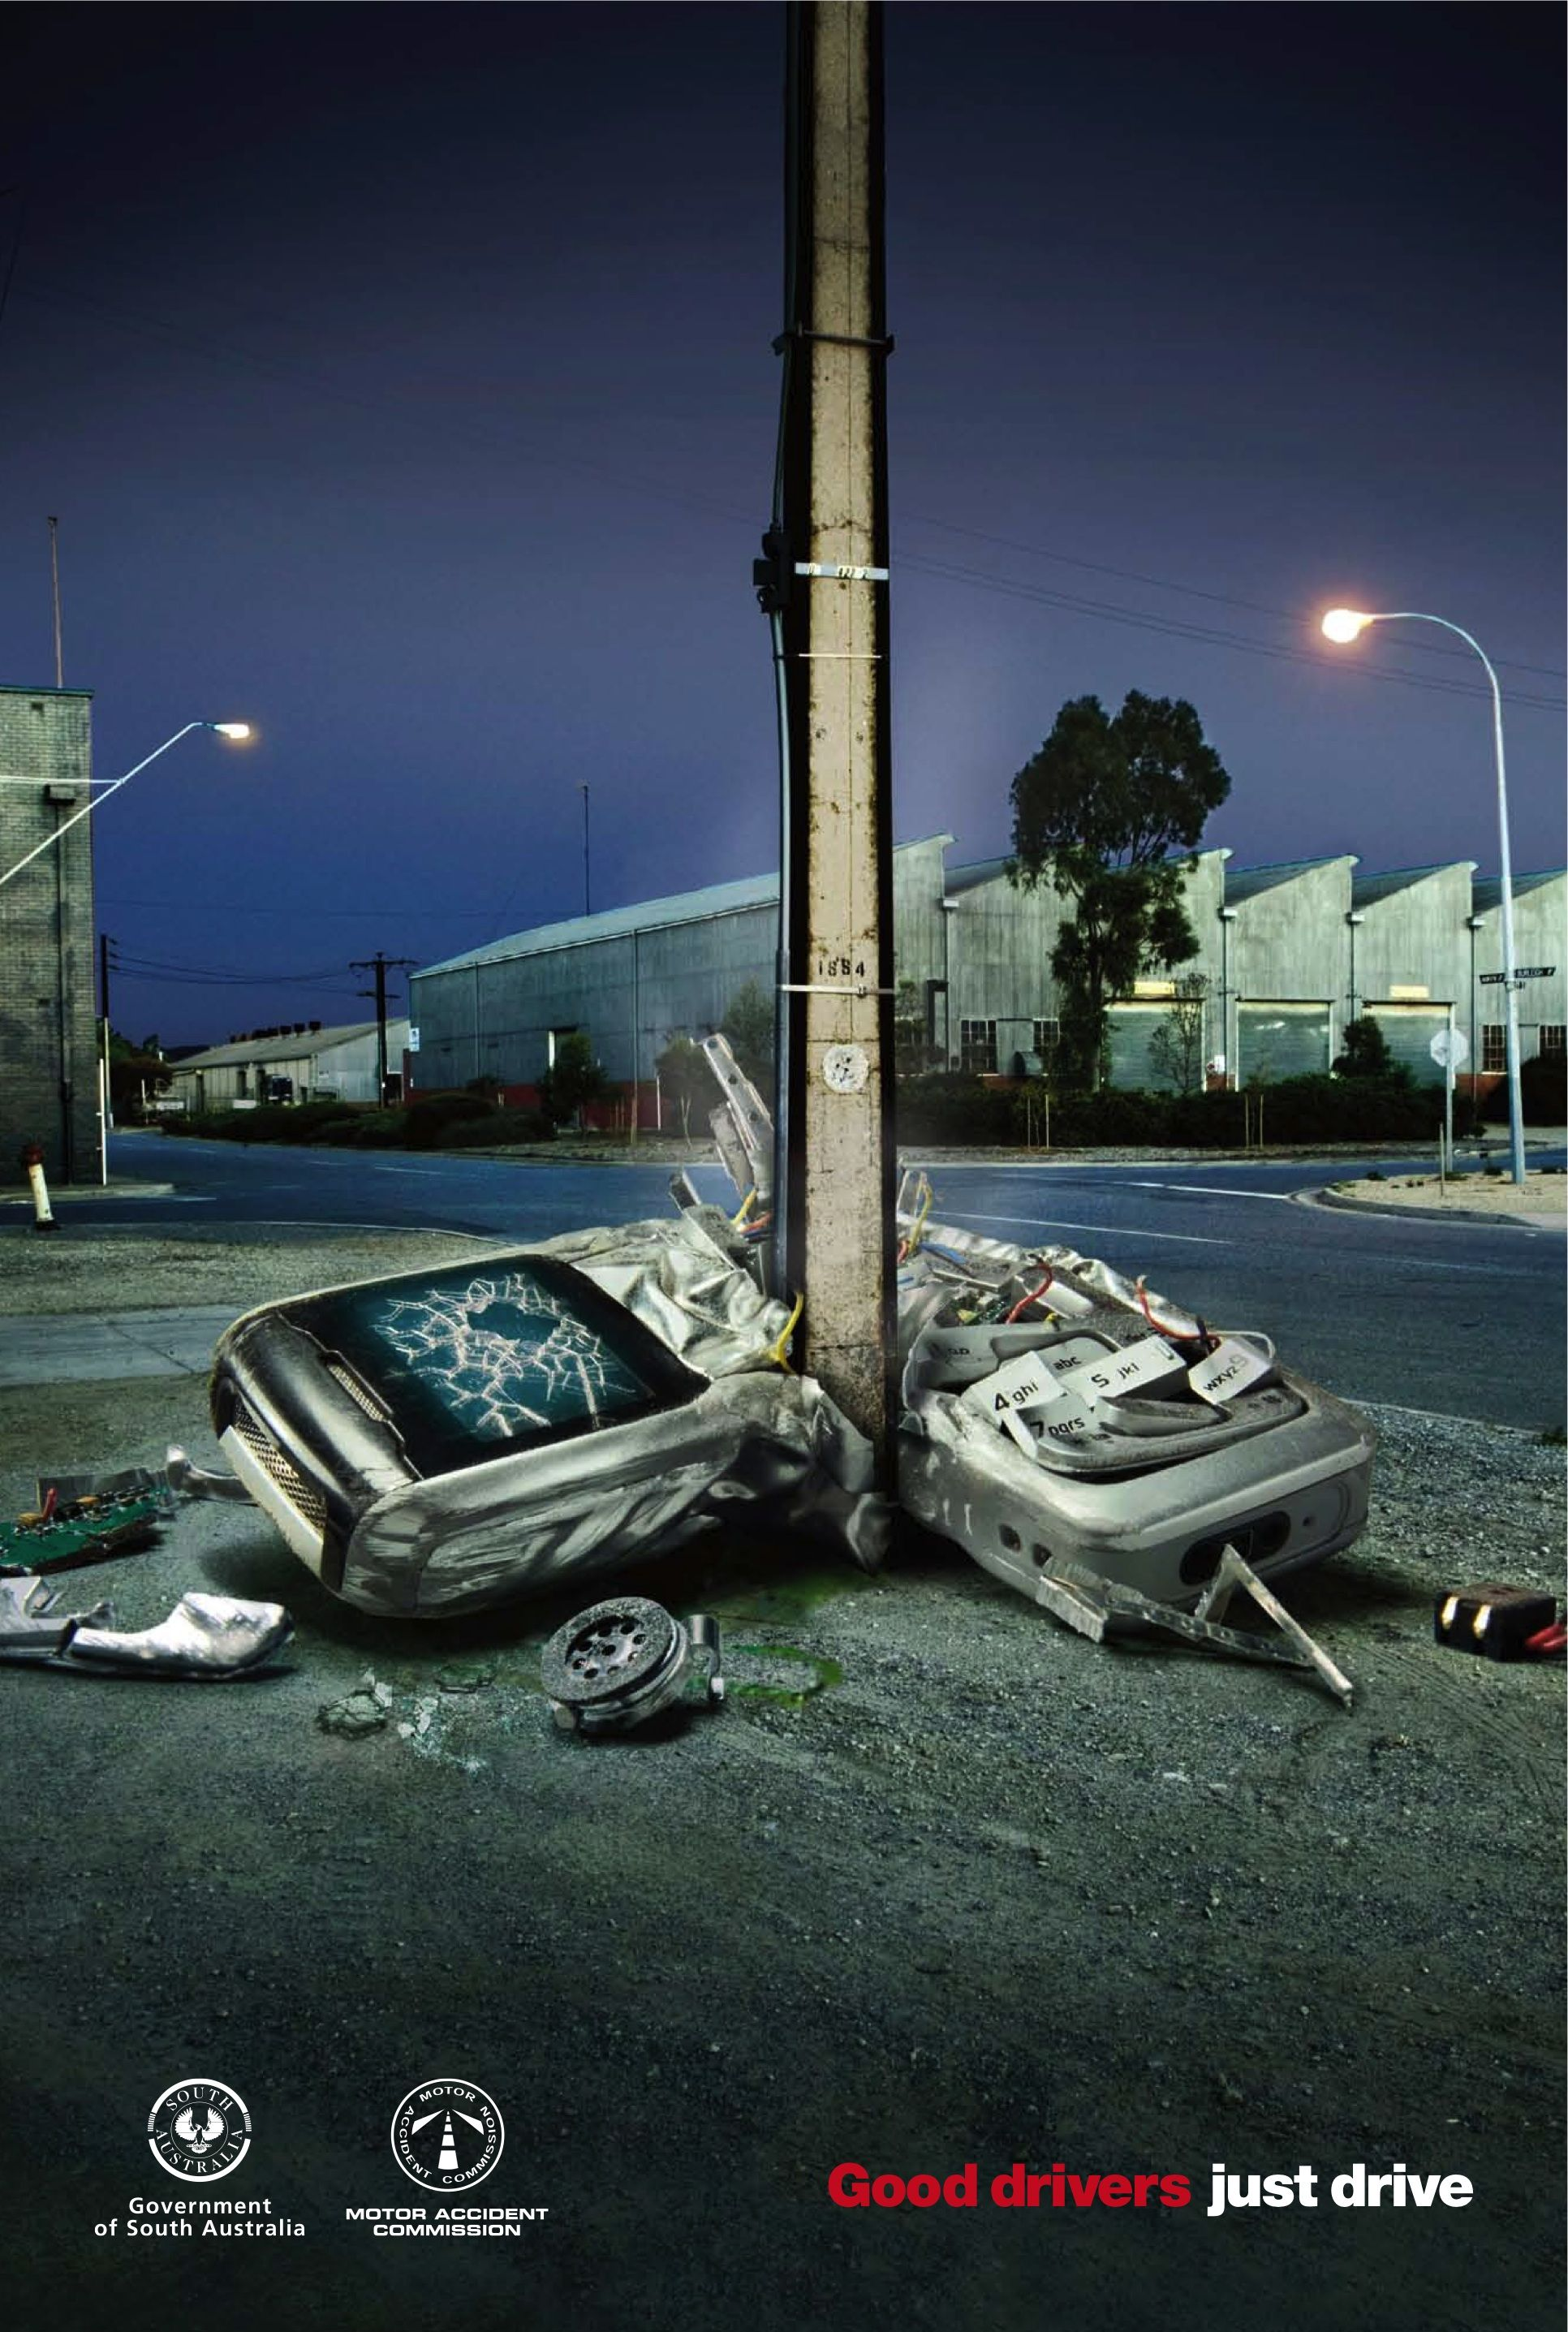 Government of South Australia and The Motor Accident